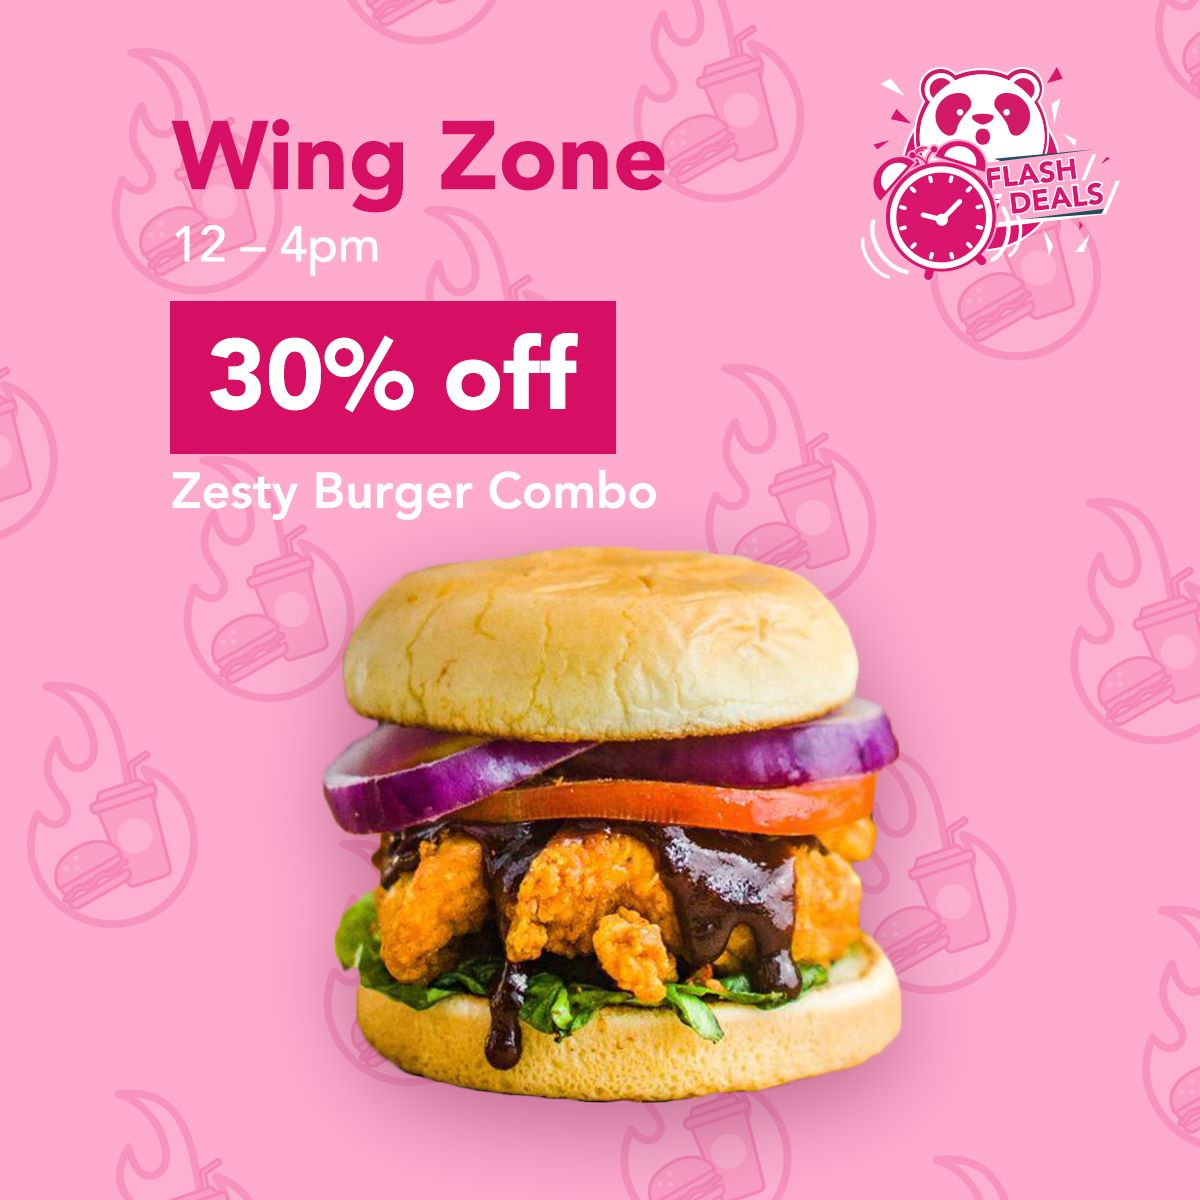 foodpanda Singapore Flash Sale Mondays Up to 50% Off Promotion 14 Oct 2019 | Why Not Deals 1 & Promotions